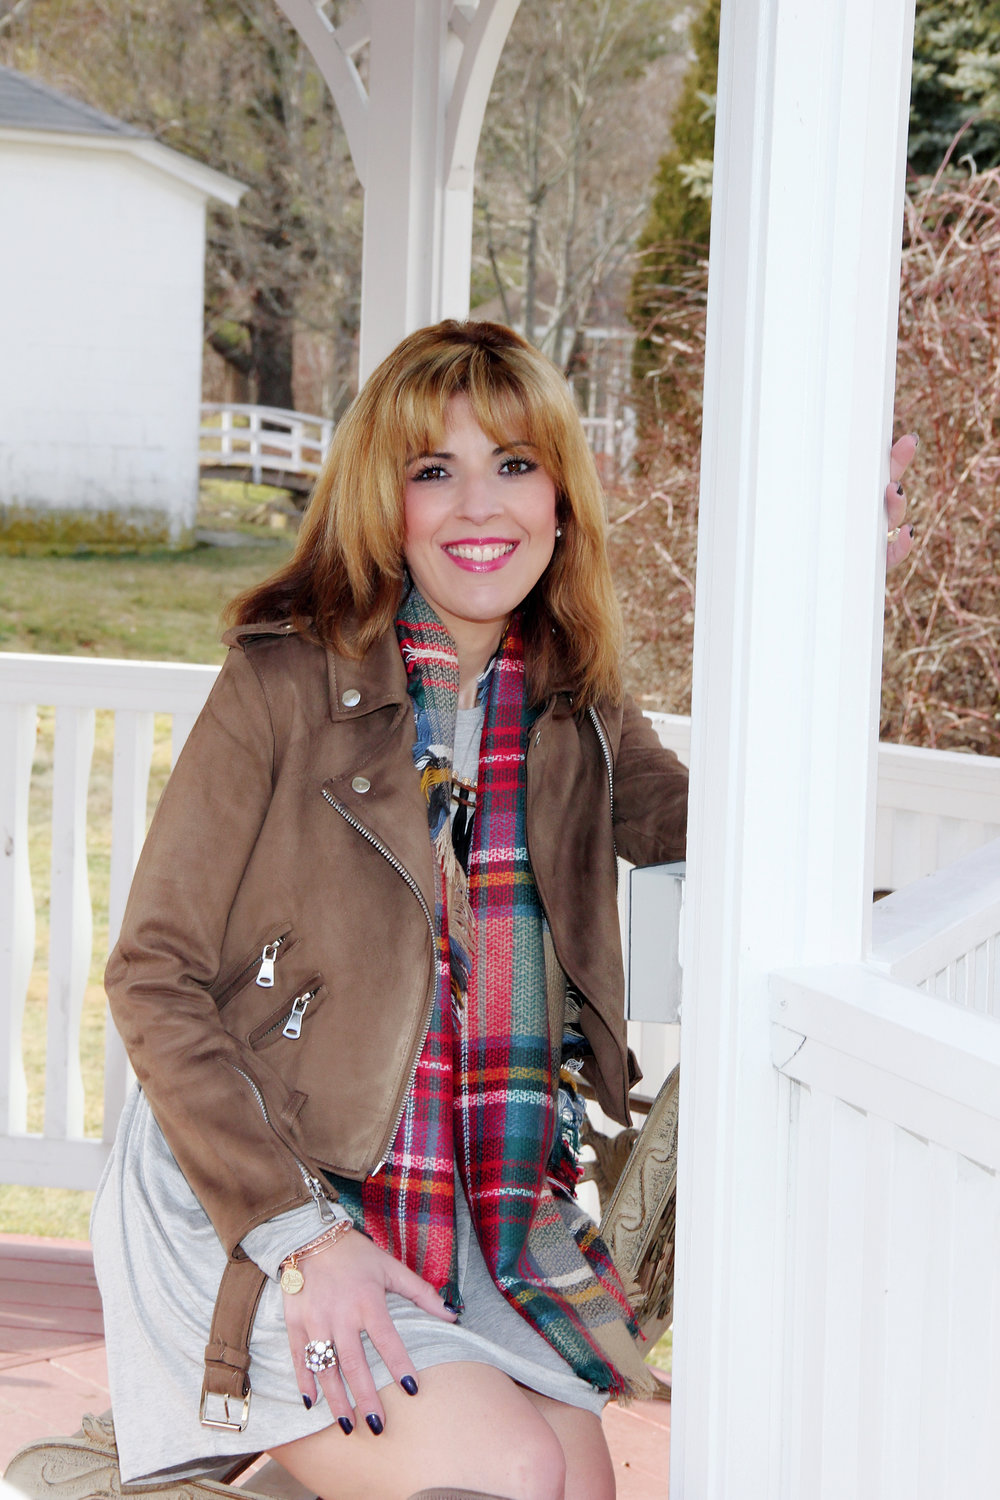 The dress is called forever flawless and can be found here:  https://www.sassygracecharm.com/collections/fan-favorites/products/forever-flawless-dress The scarf is called perfect plaid blanket scarf and can be found here:  https://sassy-grace-charm-boutique.myshopify.com/products/the-perfect-plaid-blanket-scarf?utm_medium=precommend&utm_campaign=offer&utm_source=popular&app=precommend